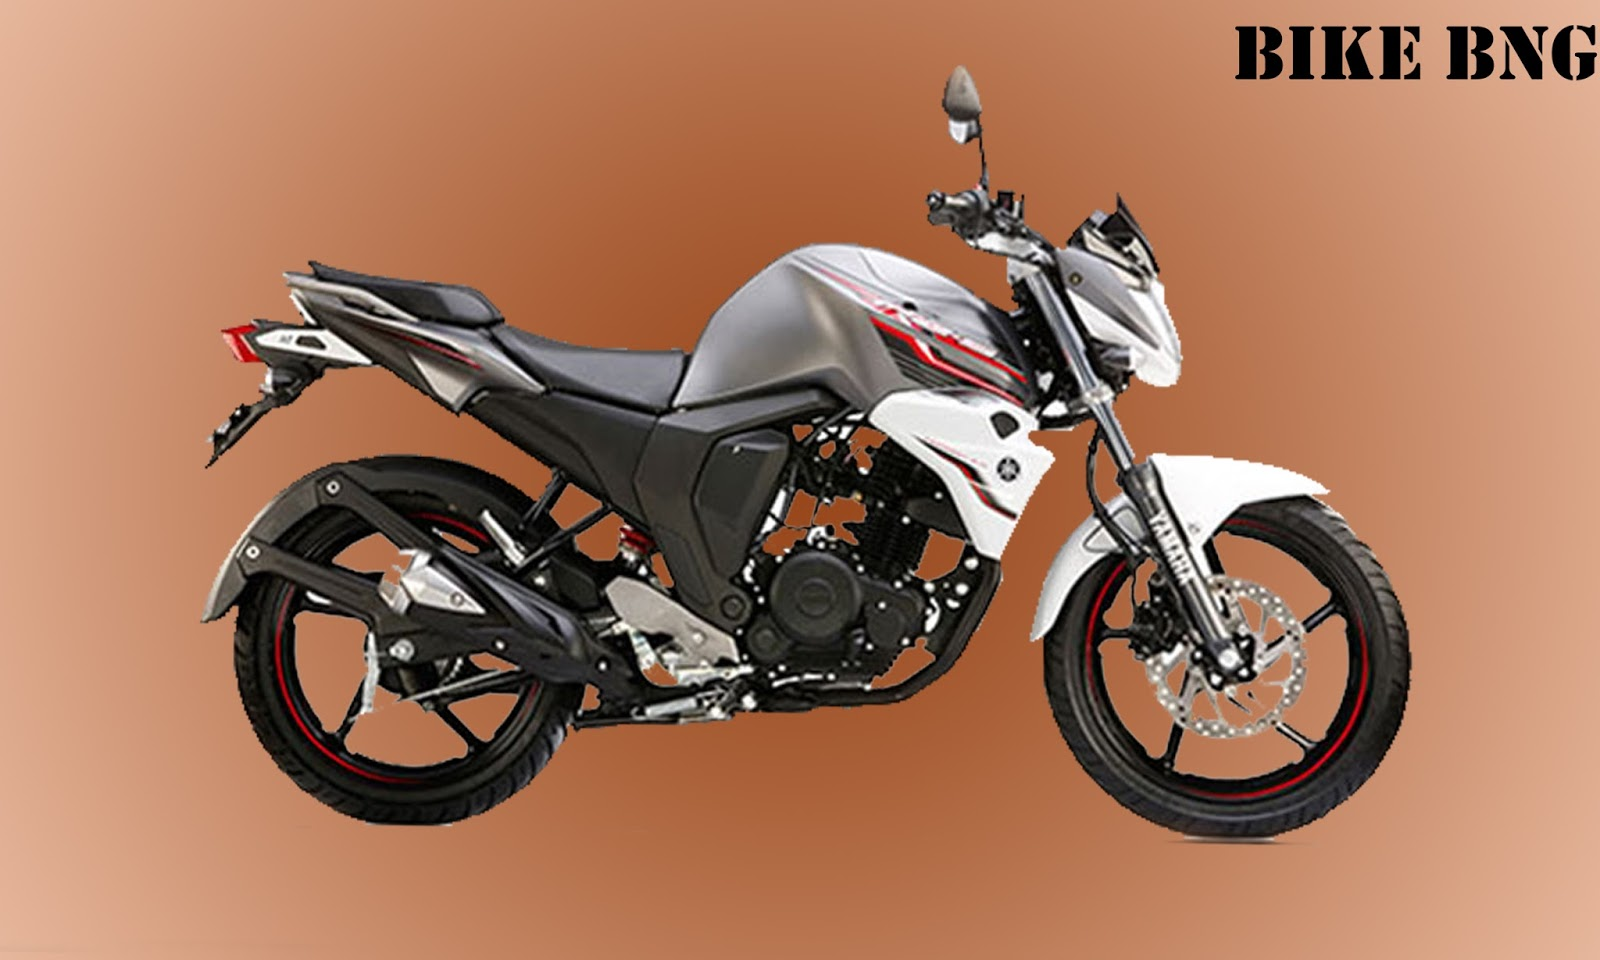 Yamaha fz zi bikebng motorcycle price review tips in for Yamaha 9 9 price